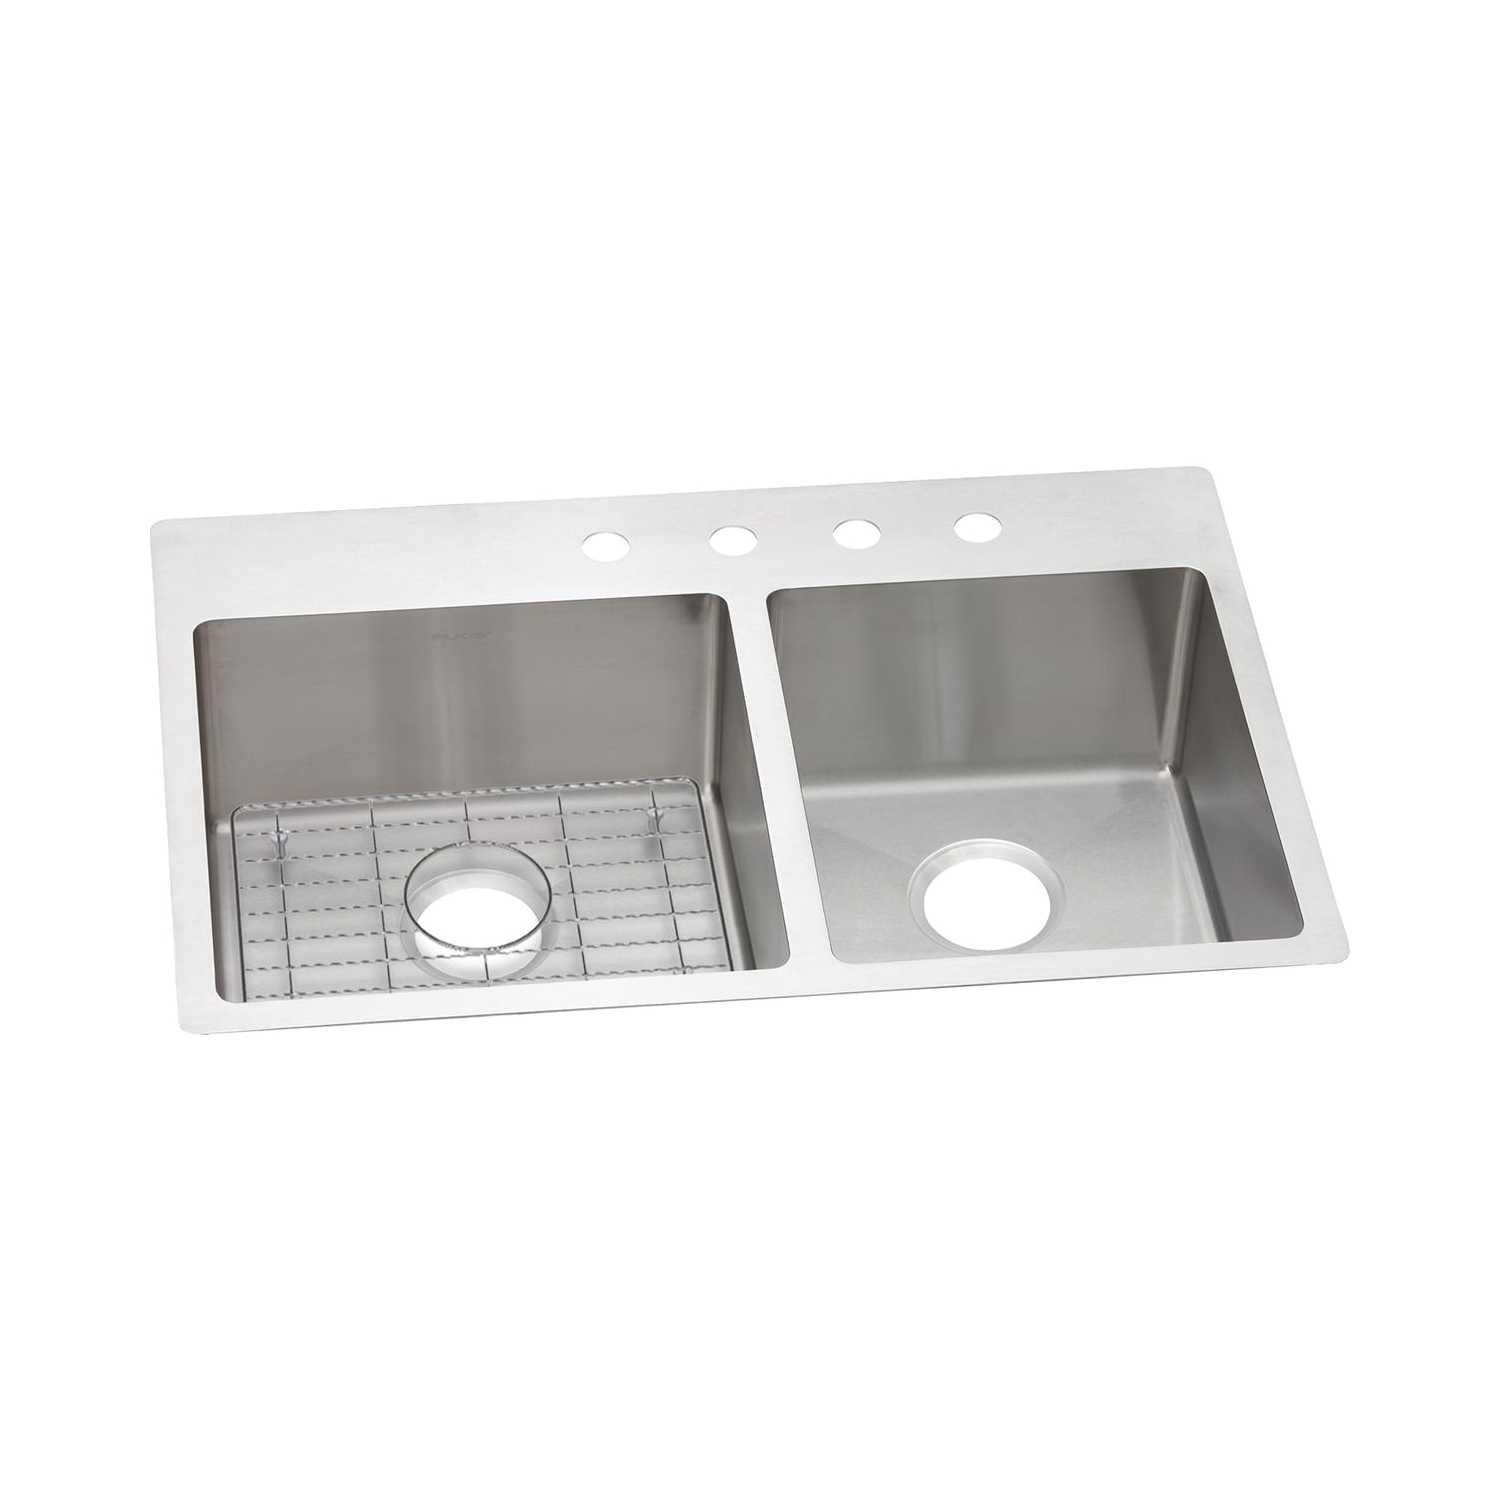 Elkay® ECTSRO33229RBGFR2 Crosstown™ Dual Mount Sink Kit, Rectangular, 2 Faucet Holes, 22 in W x 33 in D x 9 in H, Top/Under Mount, Stainless Steel, Polished Satin, Import